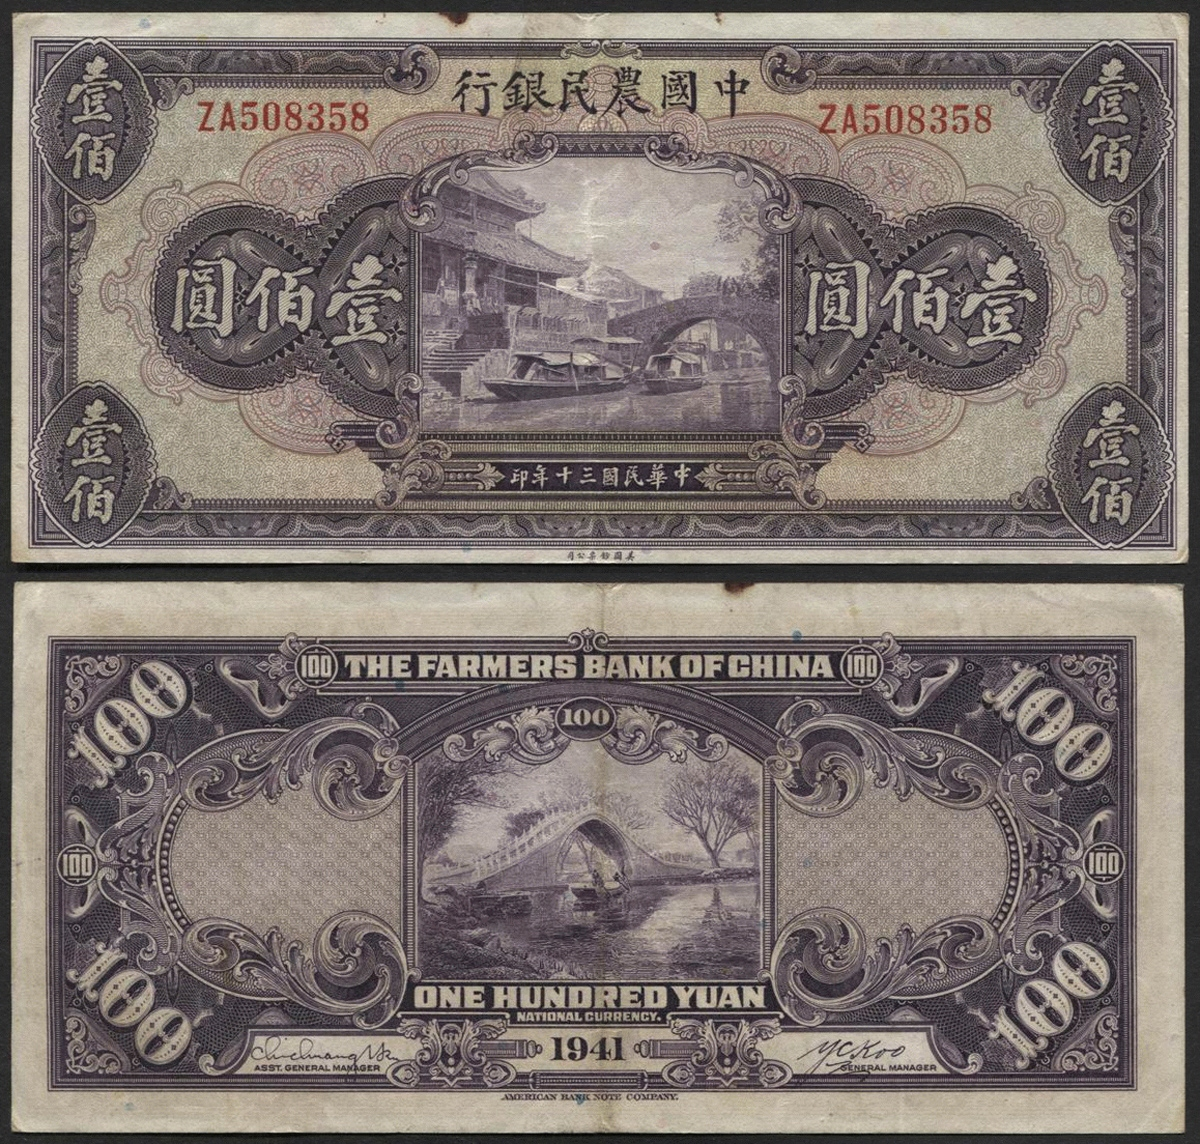 Китай. Farmers Bank of China. 100 юаней. 1941 г. Pick # 477 # ZA508358